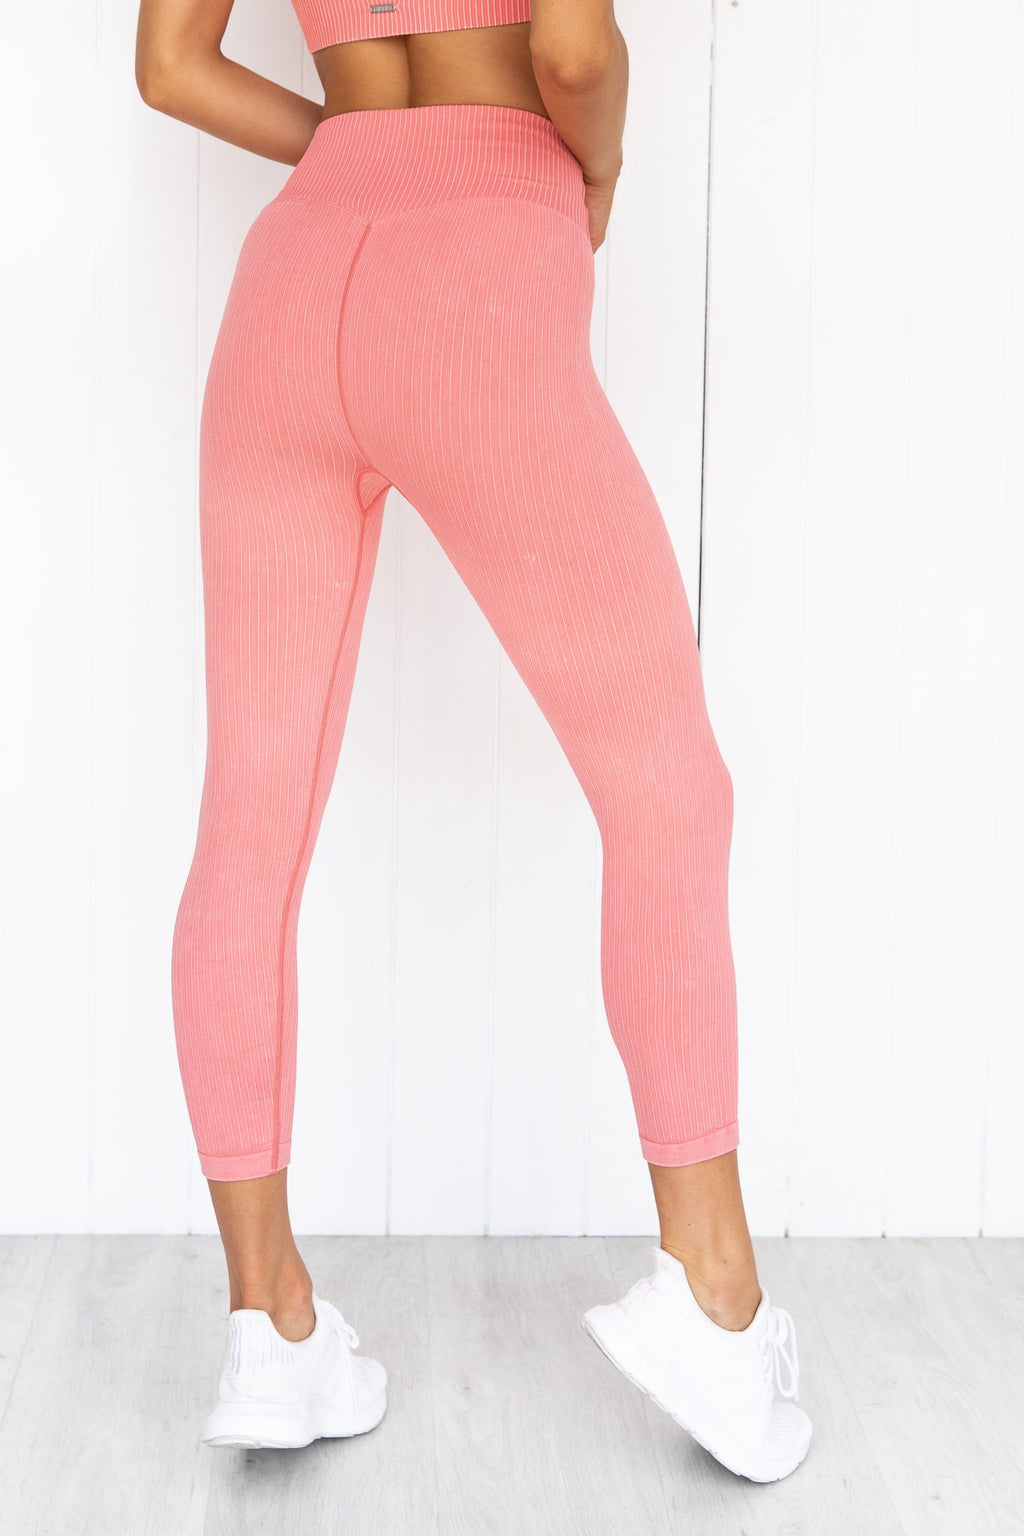 Bubblegum Washed Ribbed Seamless 7/8 Tights | Pure Dash